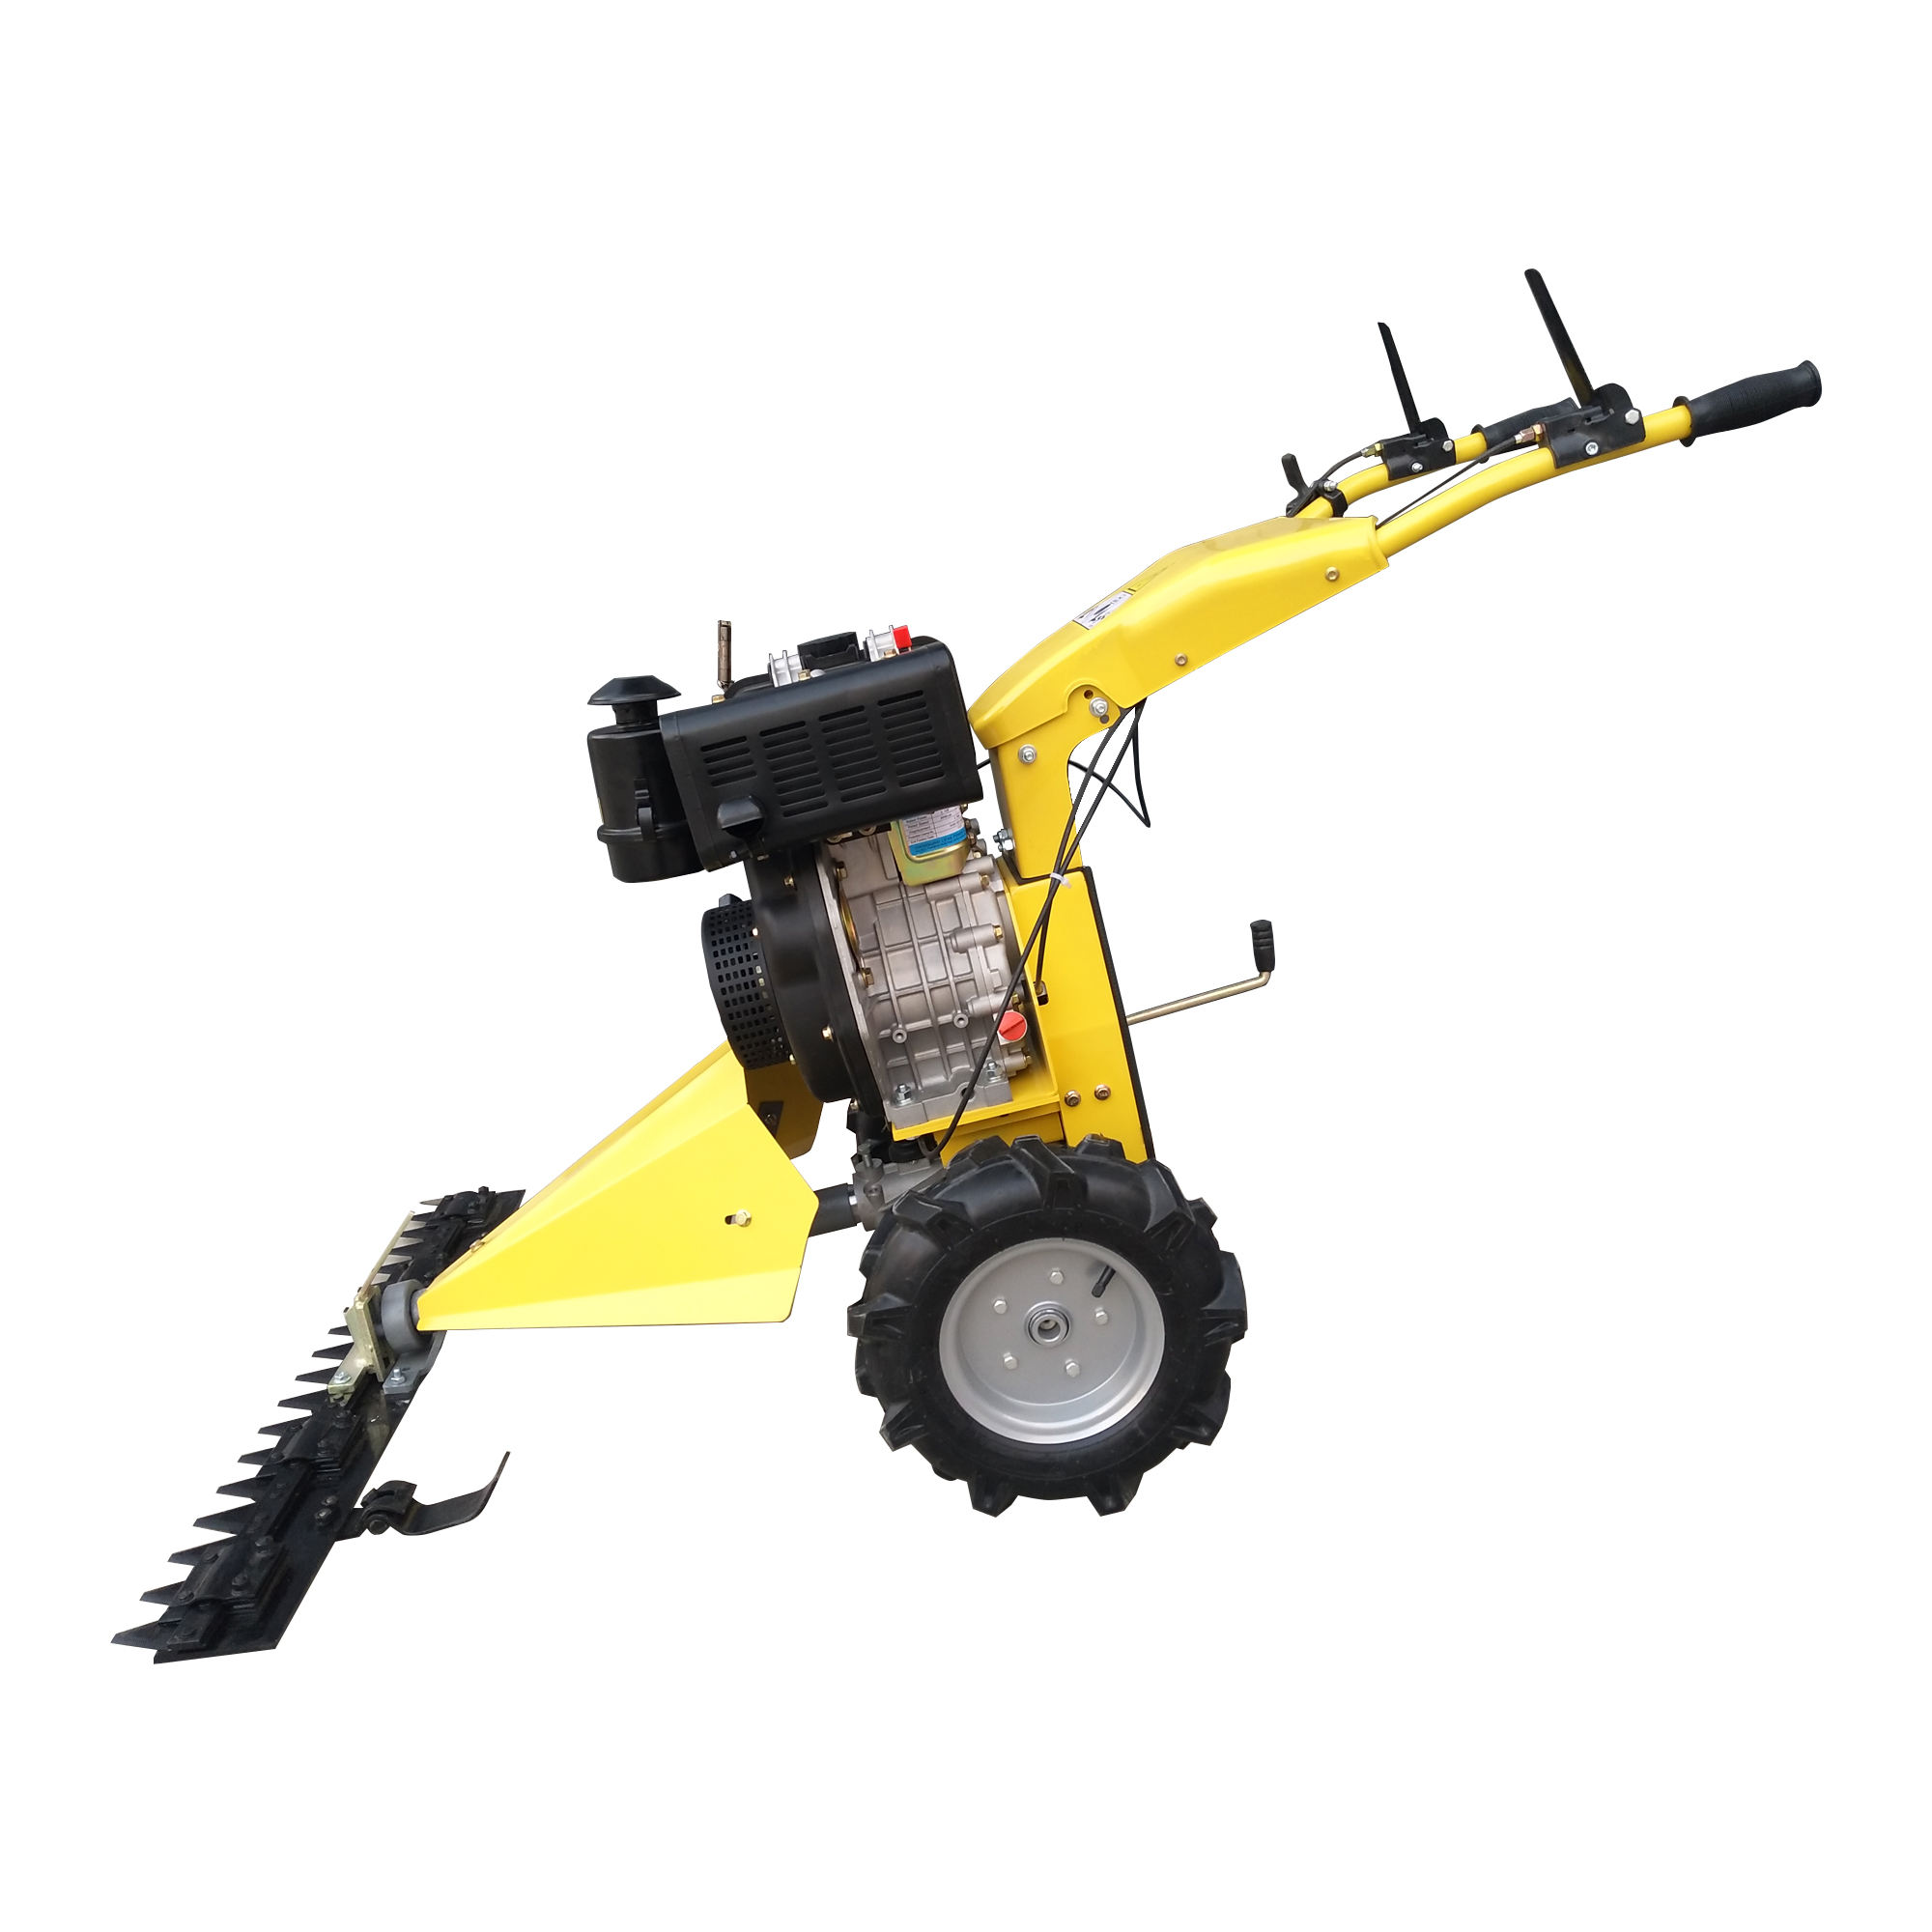 Commercial exgain robot power zero turn lawn mower self-propelled gasoline and diesel grass cutter machine price in pakistan